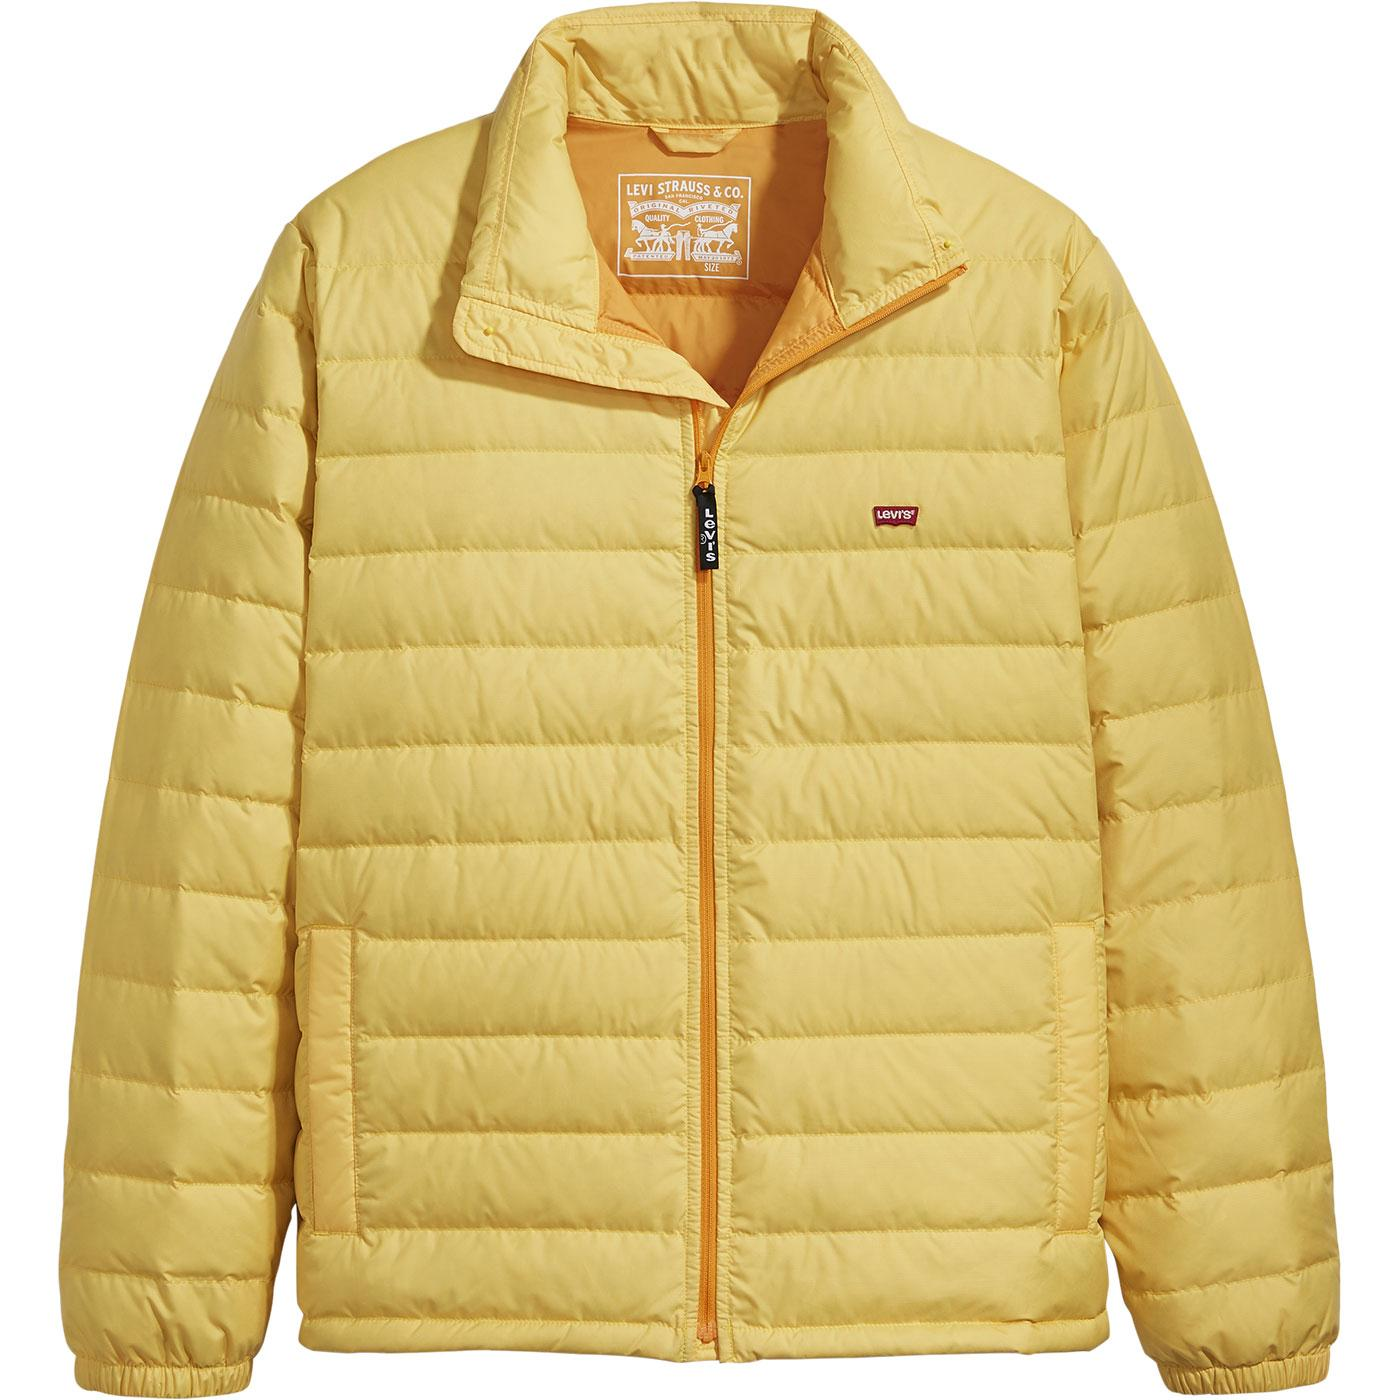 LEVI'S Down Dehon Puffer Jacket - Golden Apricot